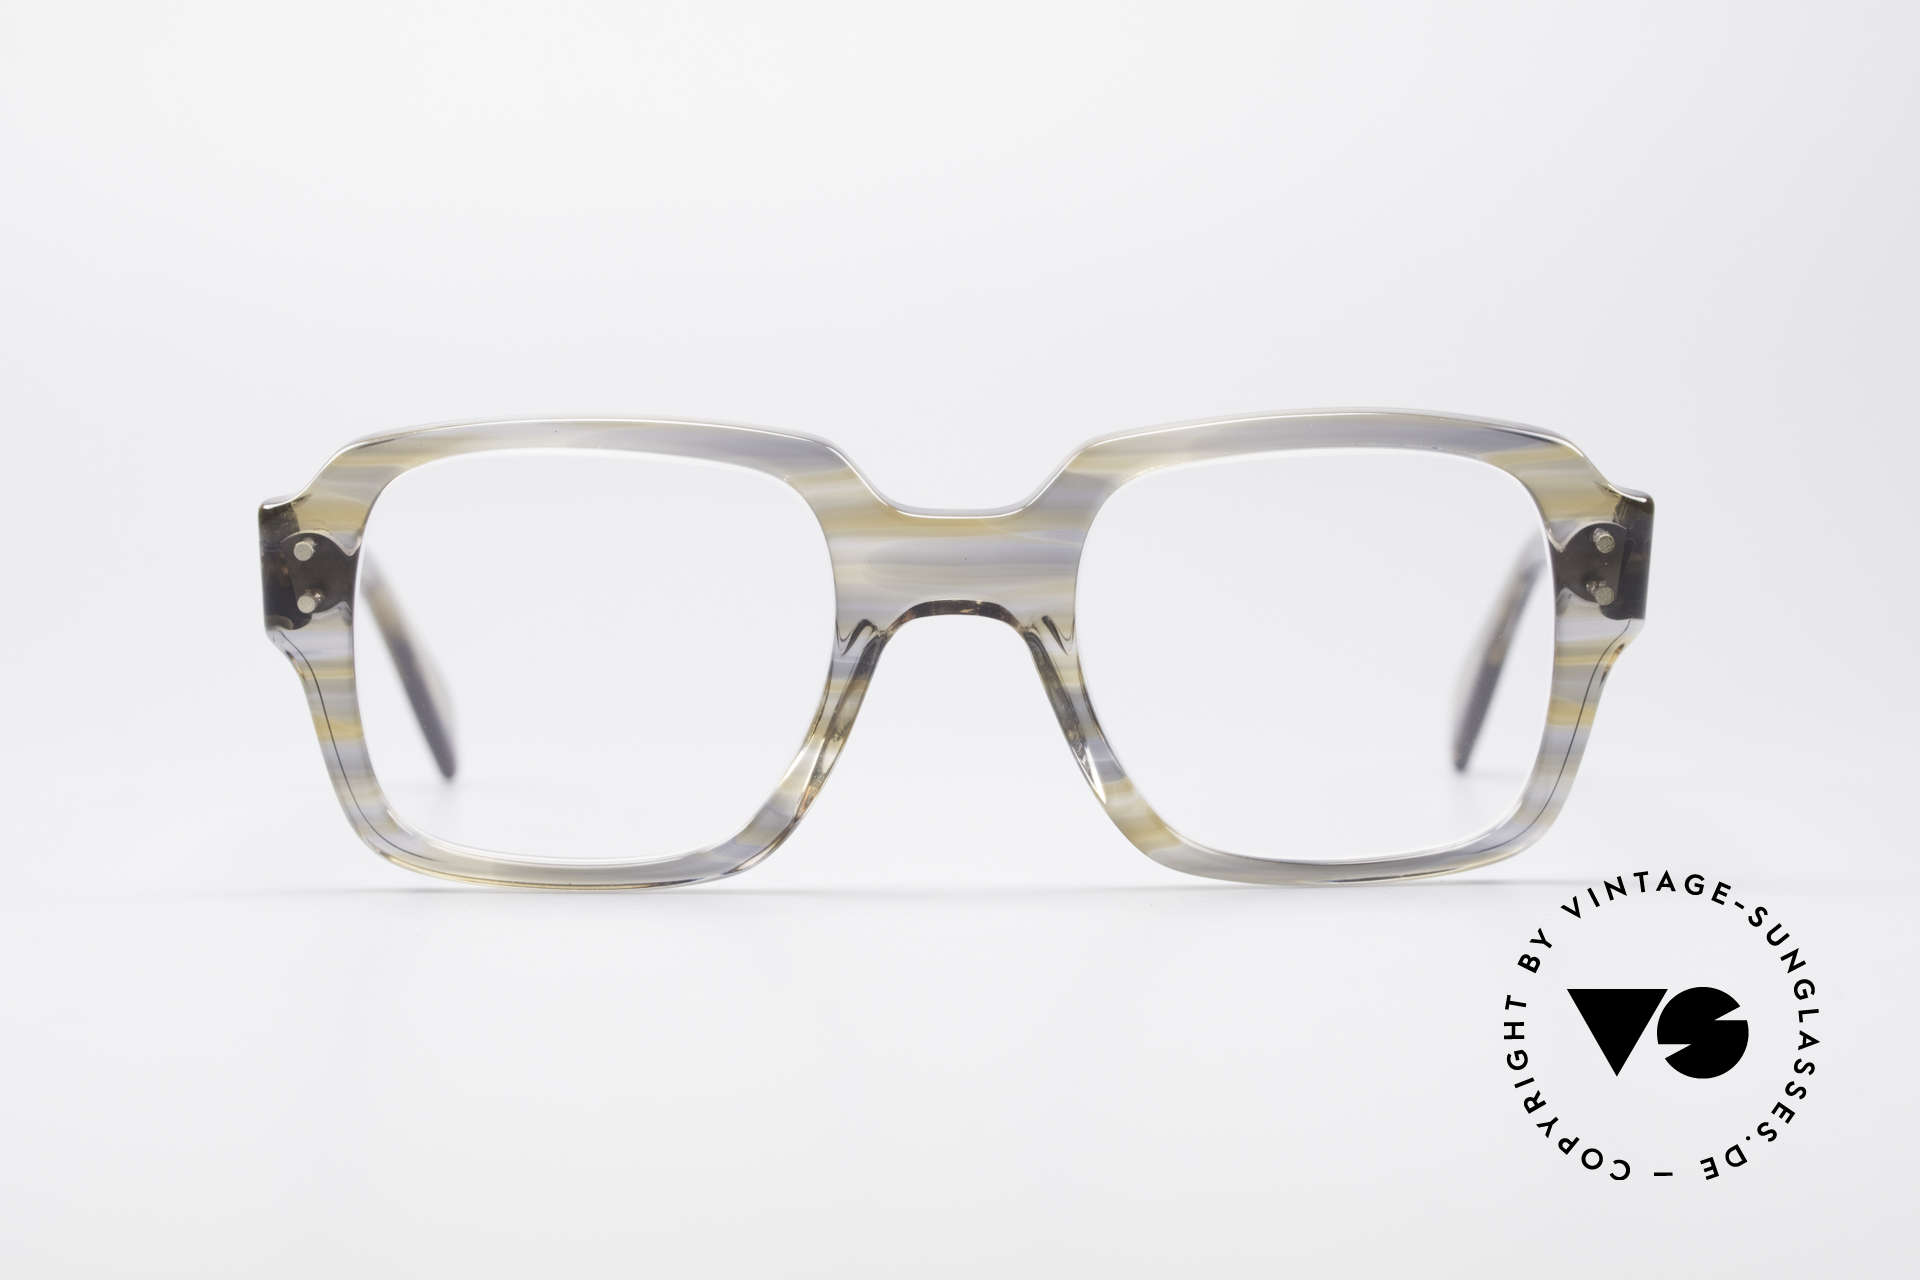 Metzler 448 70's Original Nerd Glasses, a true classic at that time - reclaimed nerd style today, Made for Men